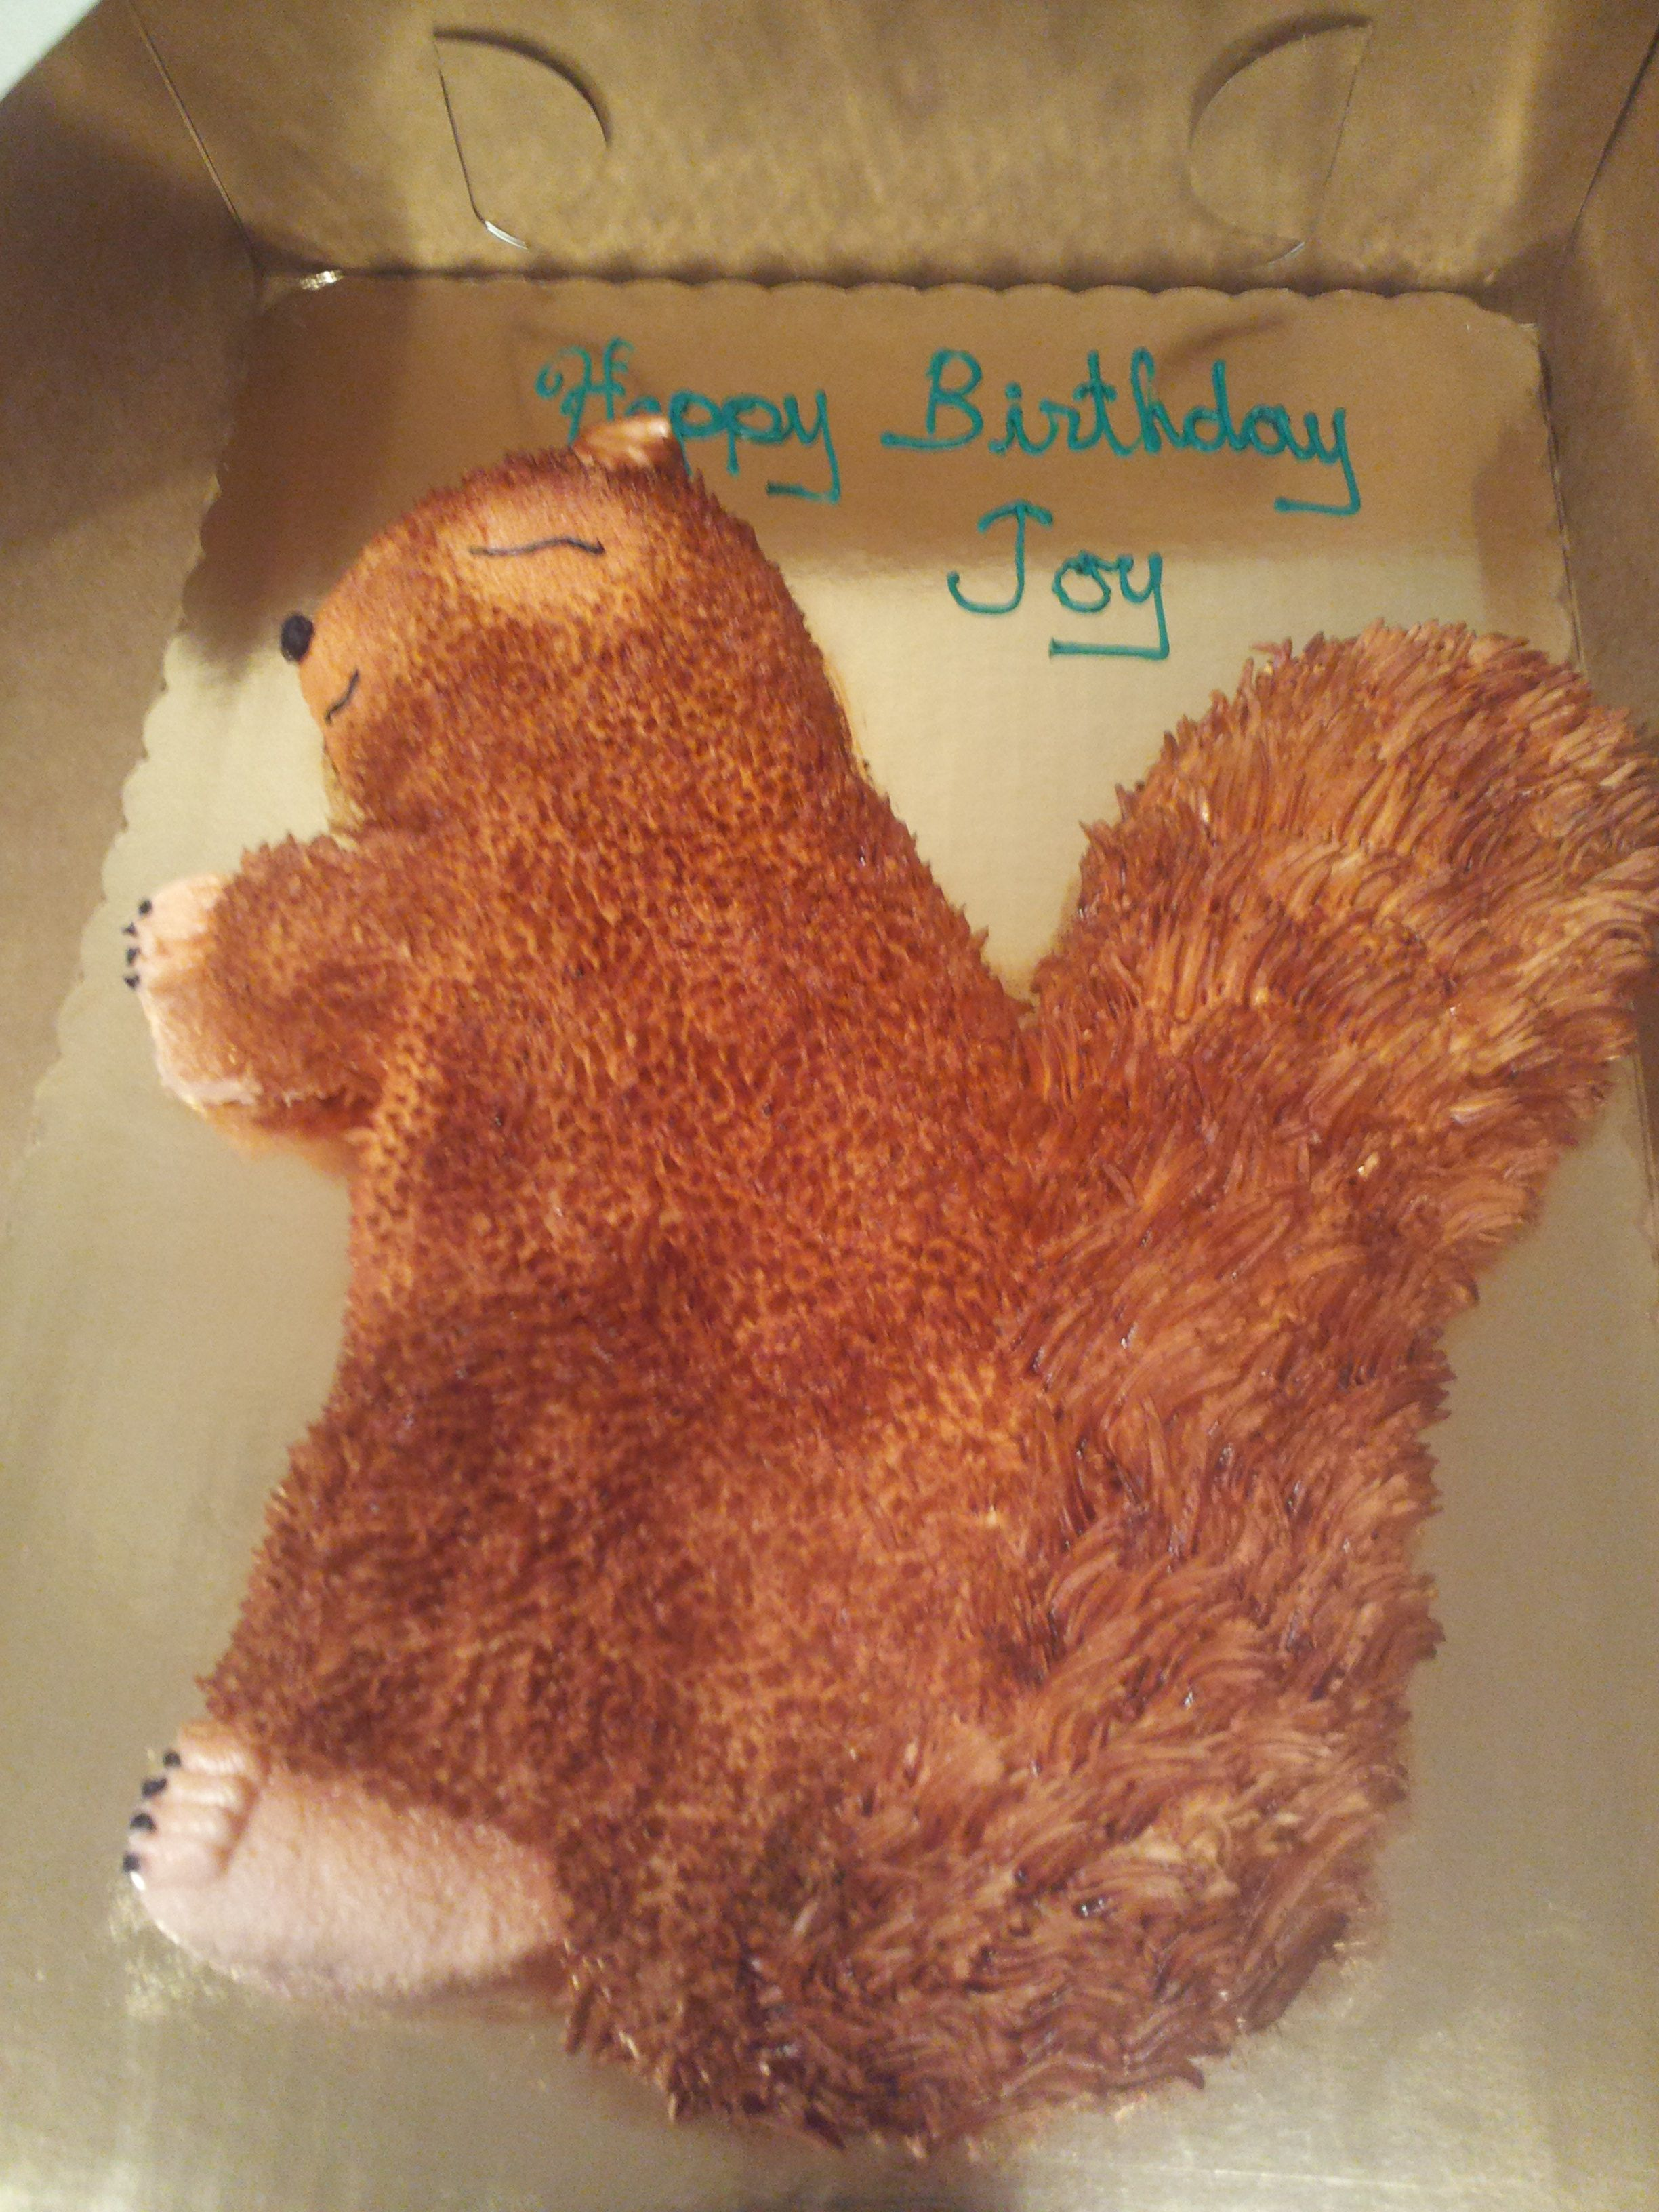 Squirrel Cake From Gallery Omaha NE